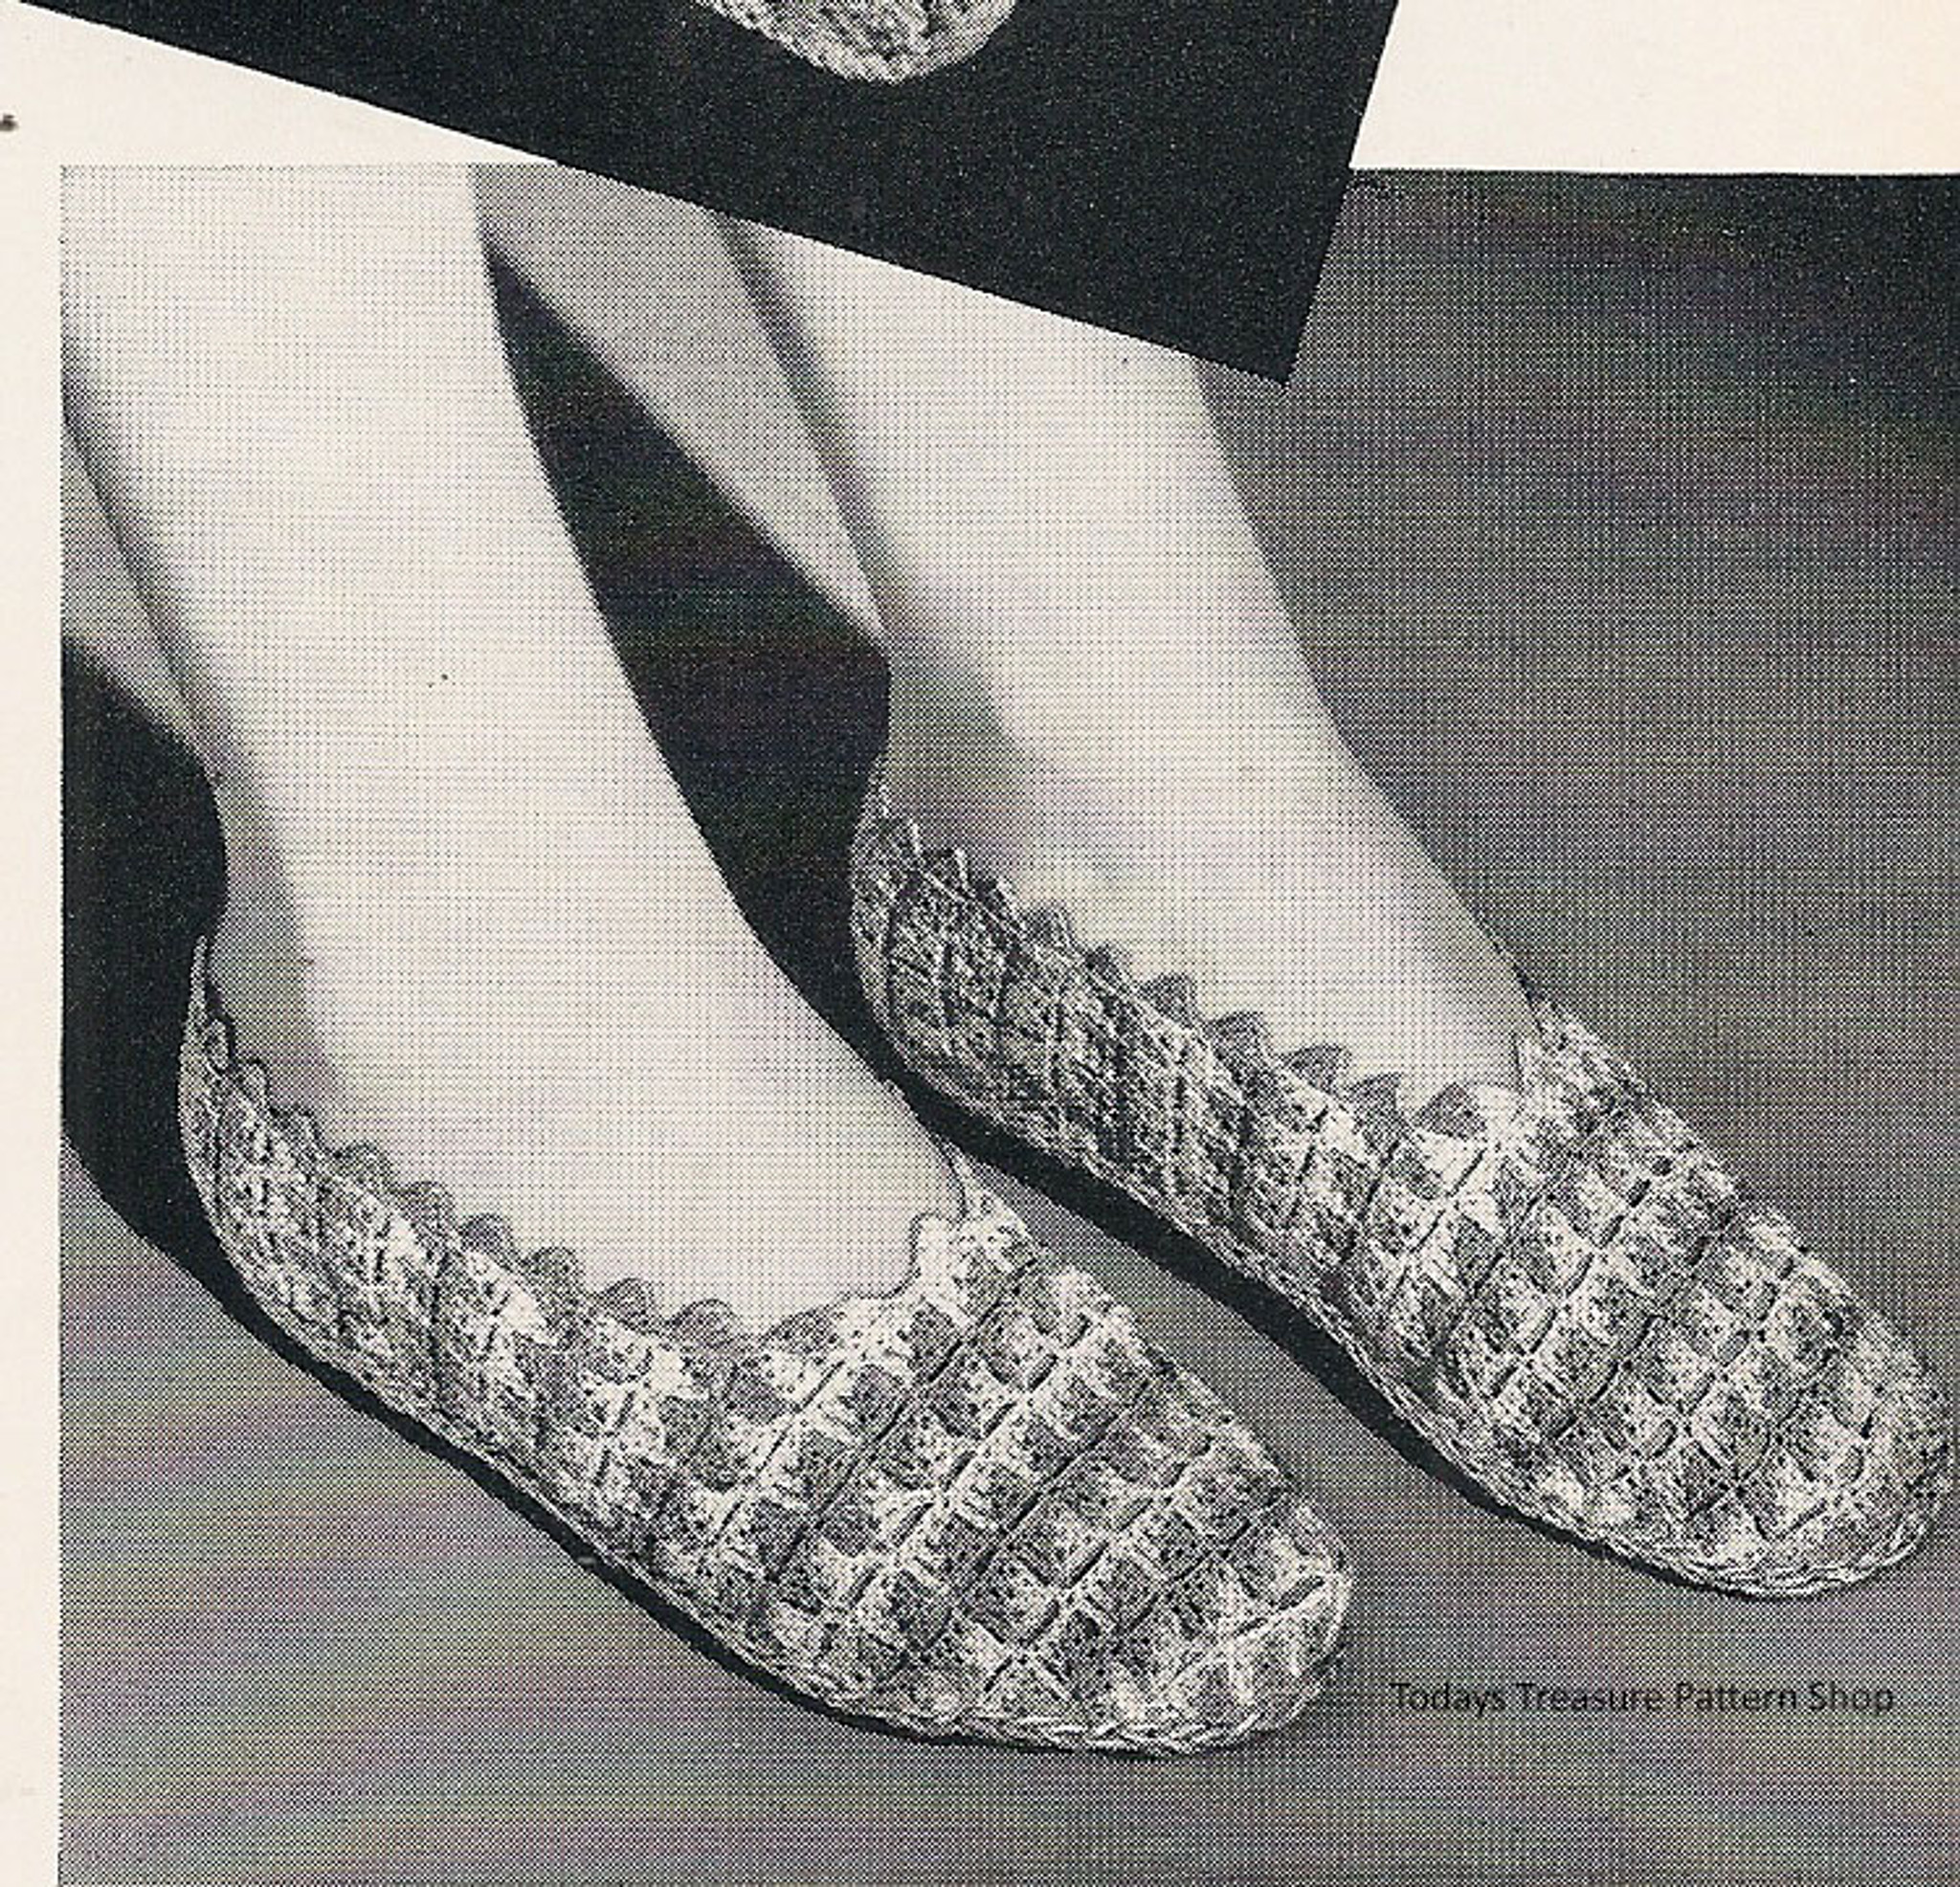 Crochet Slippers Pattern Shell Stitch Scallop Edges